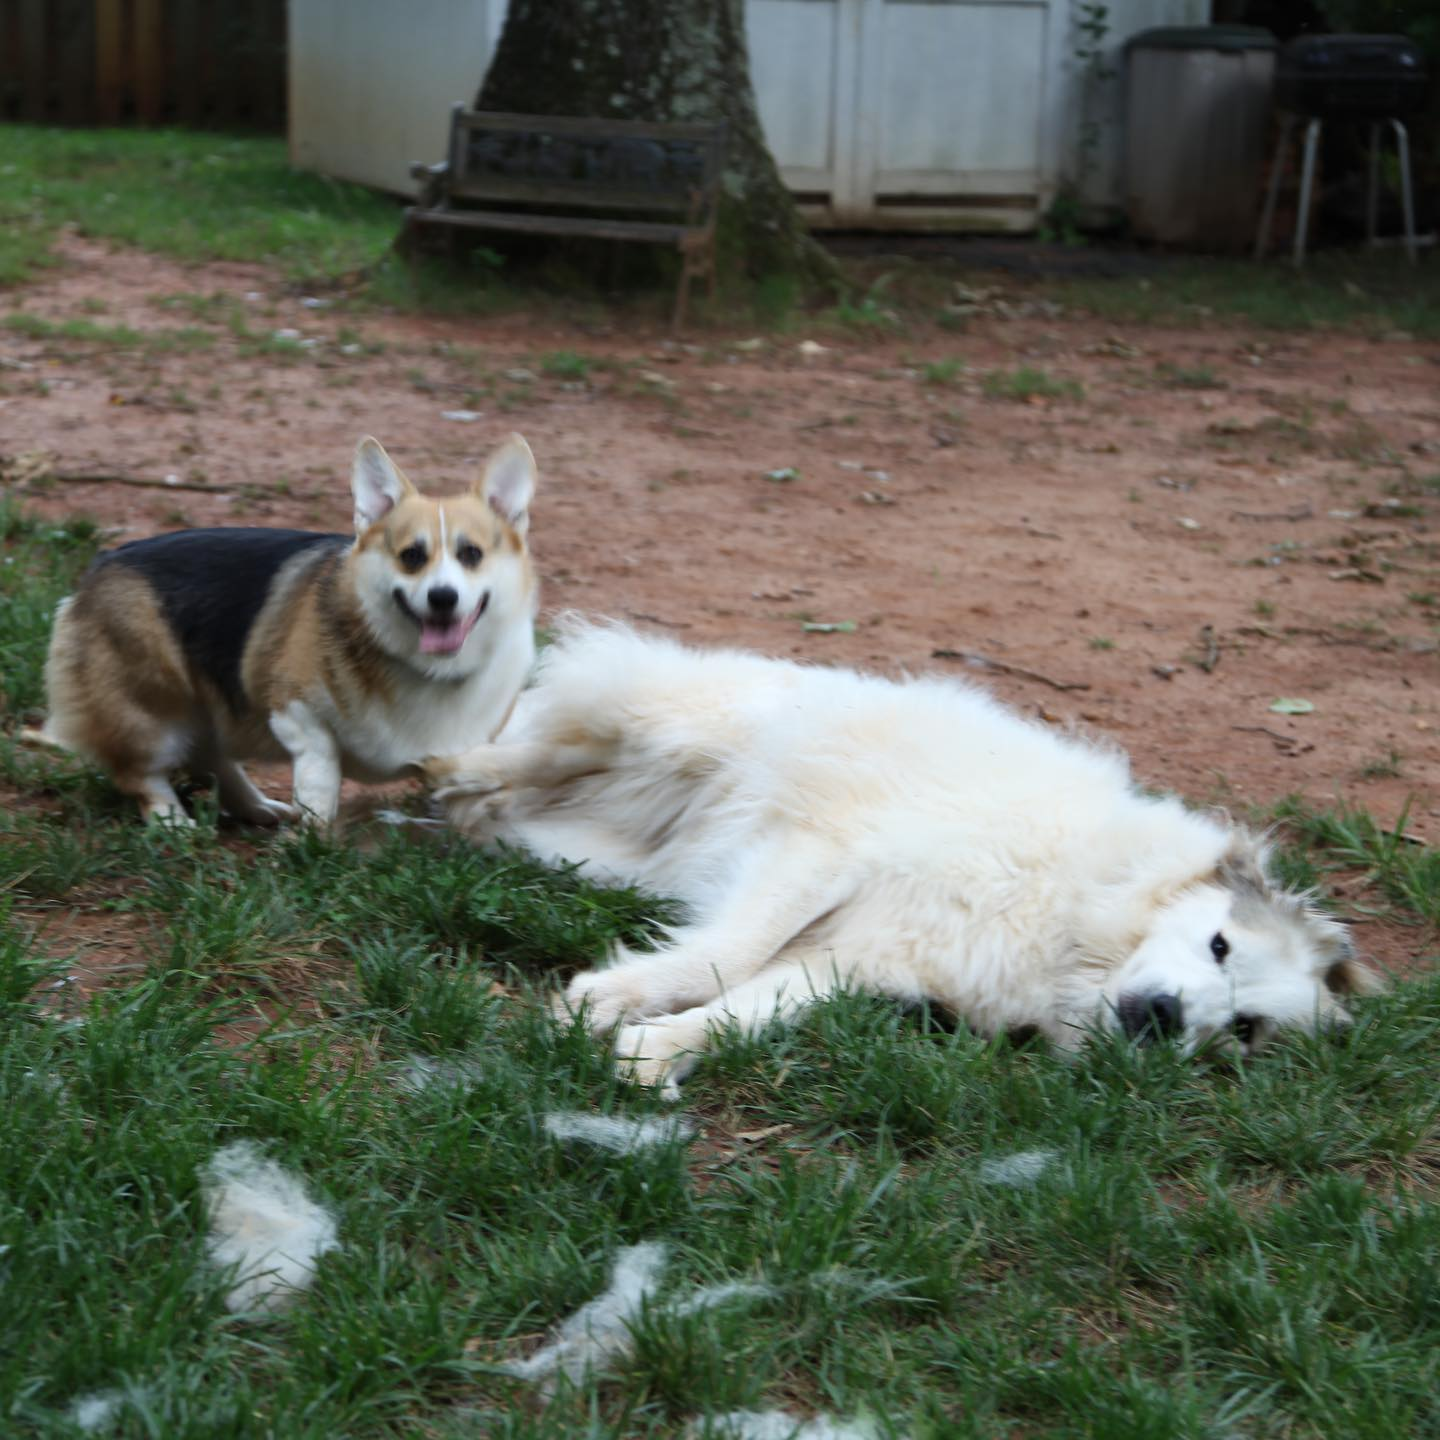 Buddy had one love whom he always tried to be a gentleman with, but Delilah was too tempting.